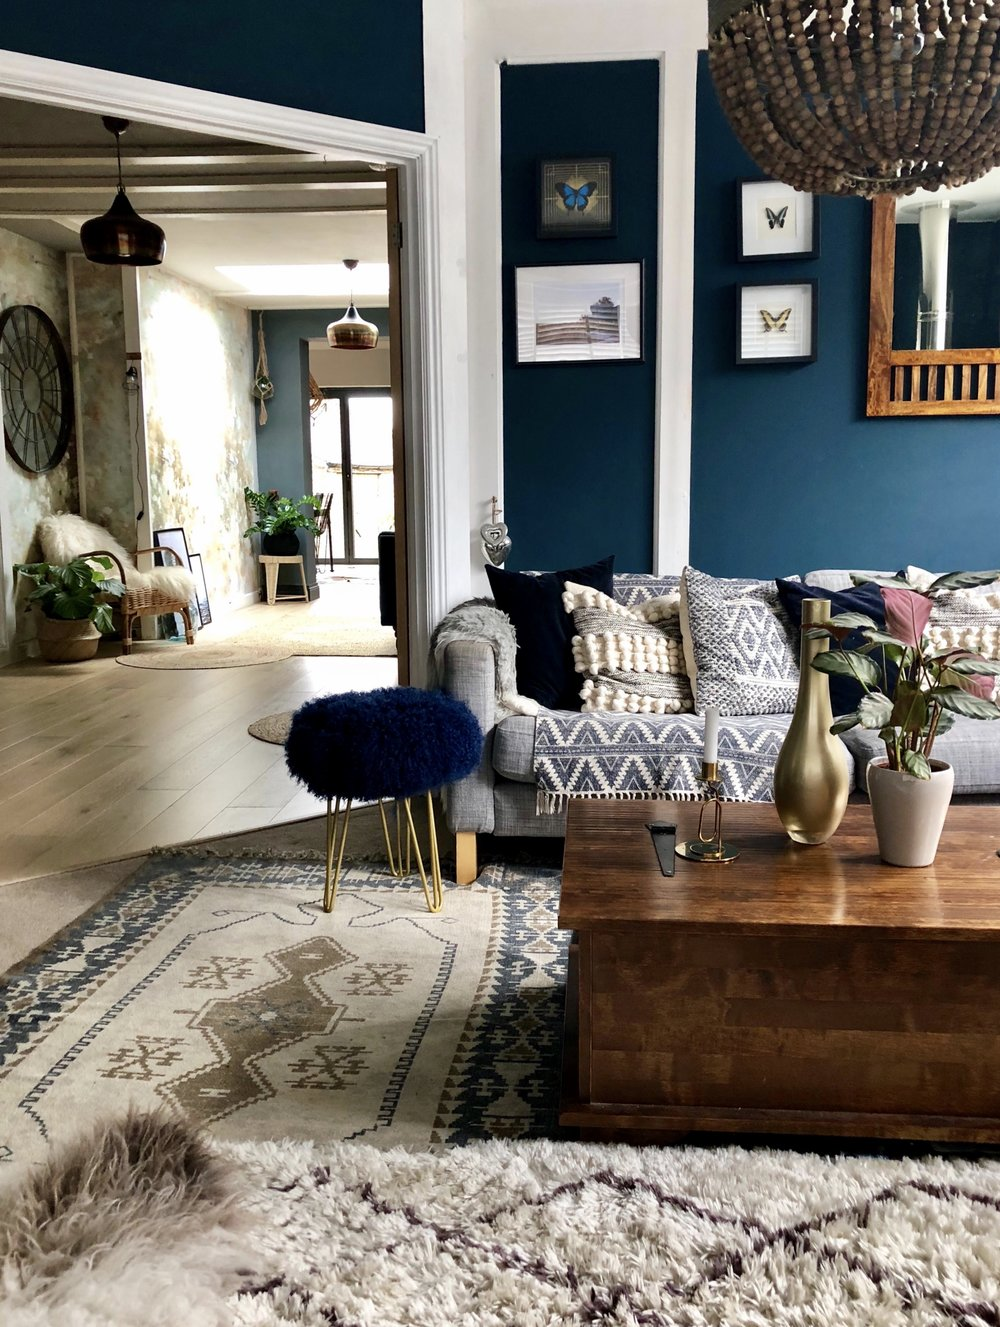 Patterned rug - French Connection....... Berber style rug - Next Home.......  Blue patterned rug on the sofa - HM home